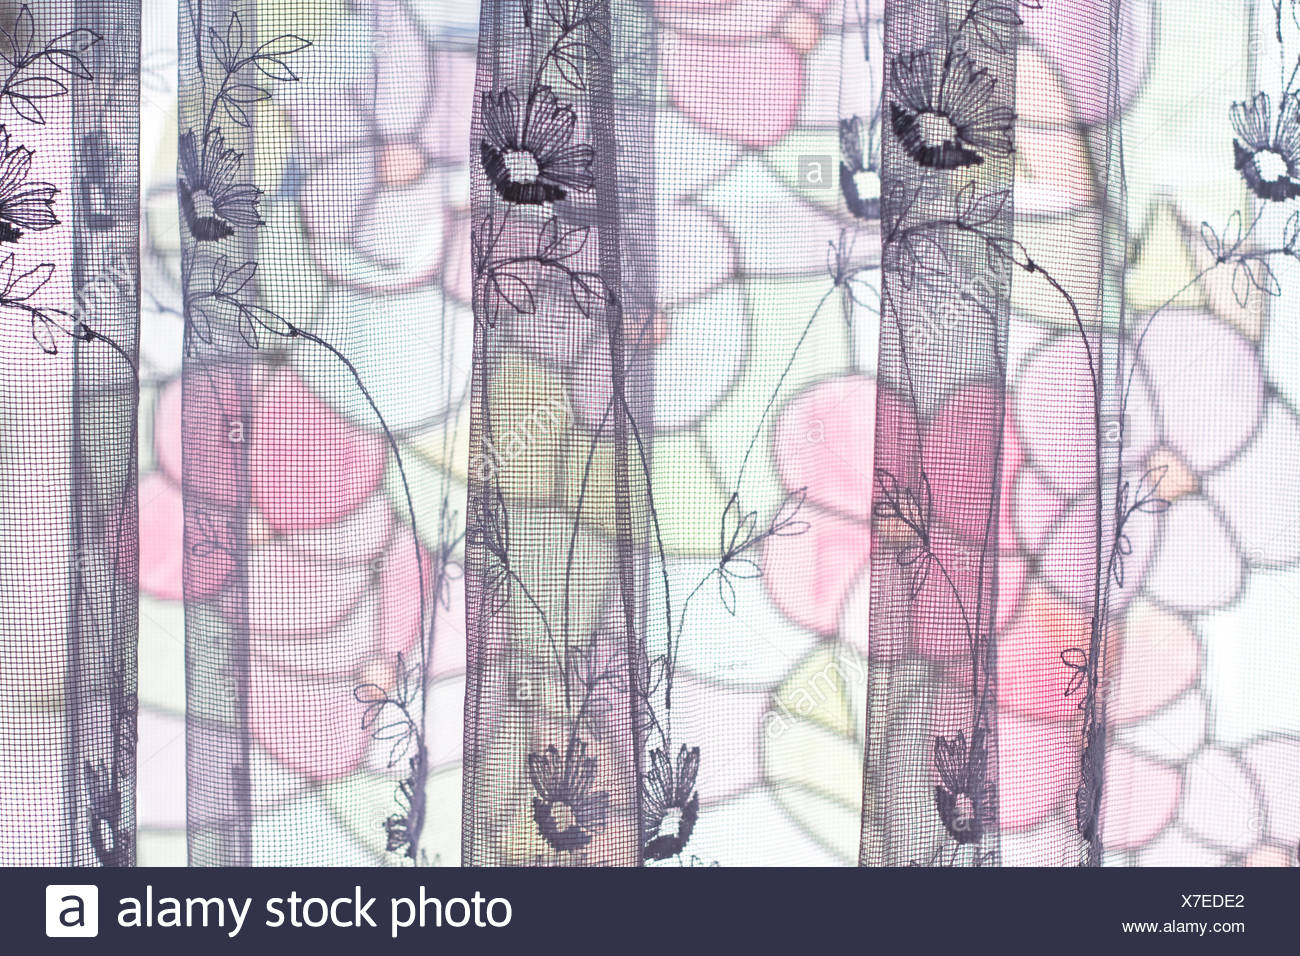 curtain, home - Stock Image